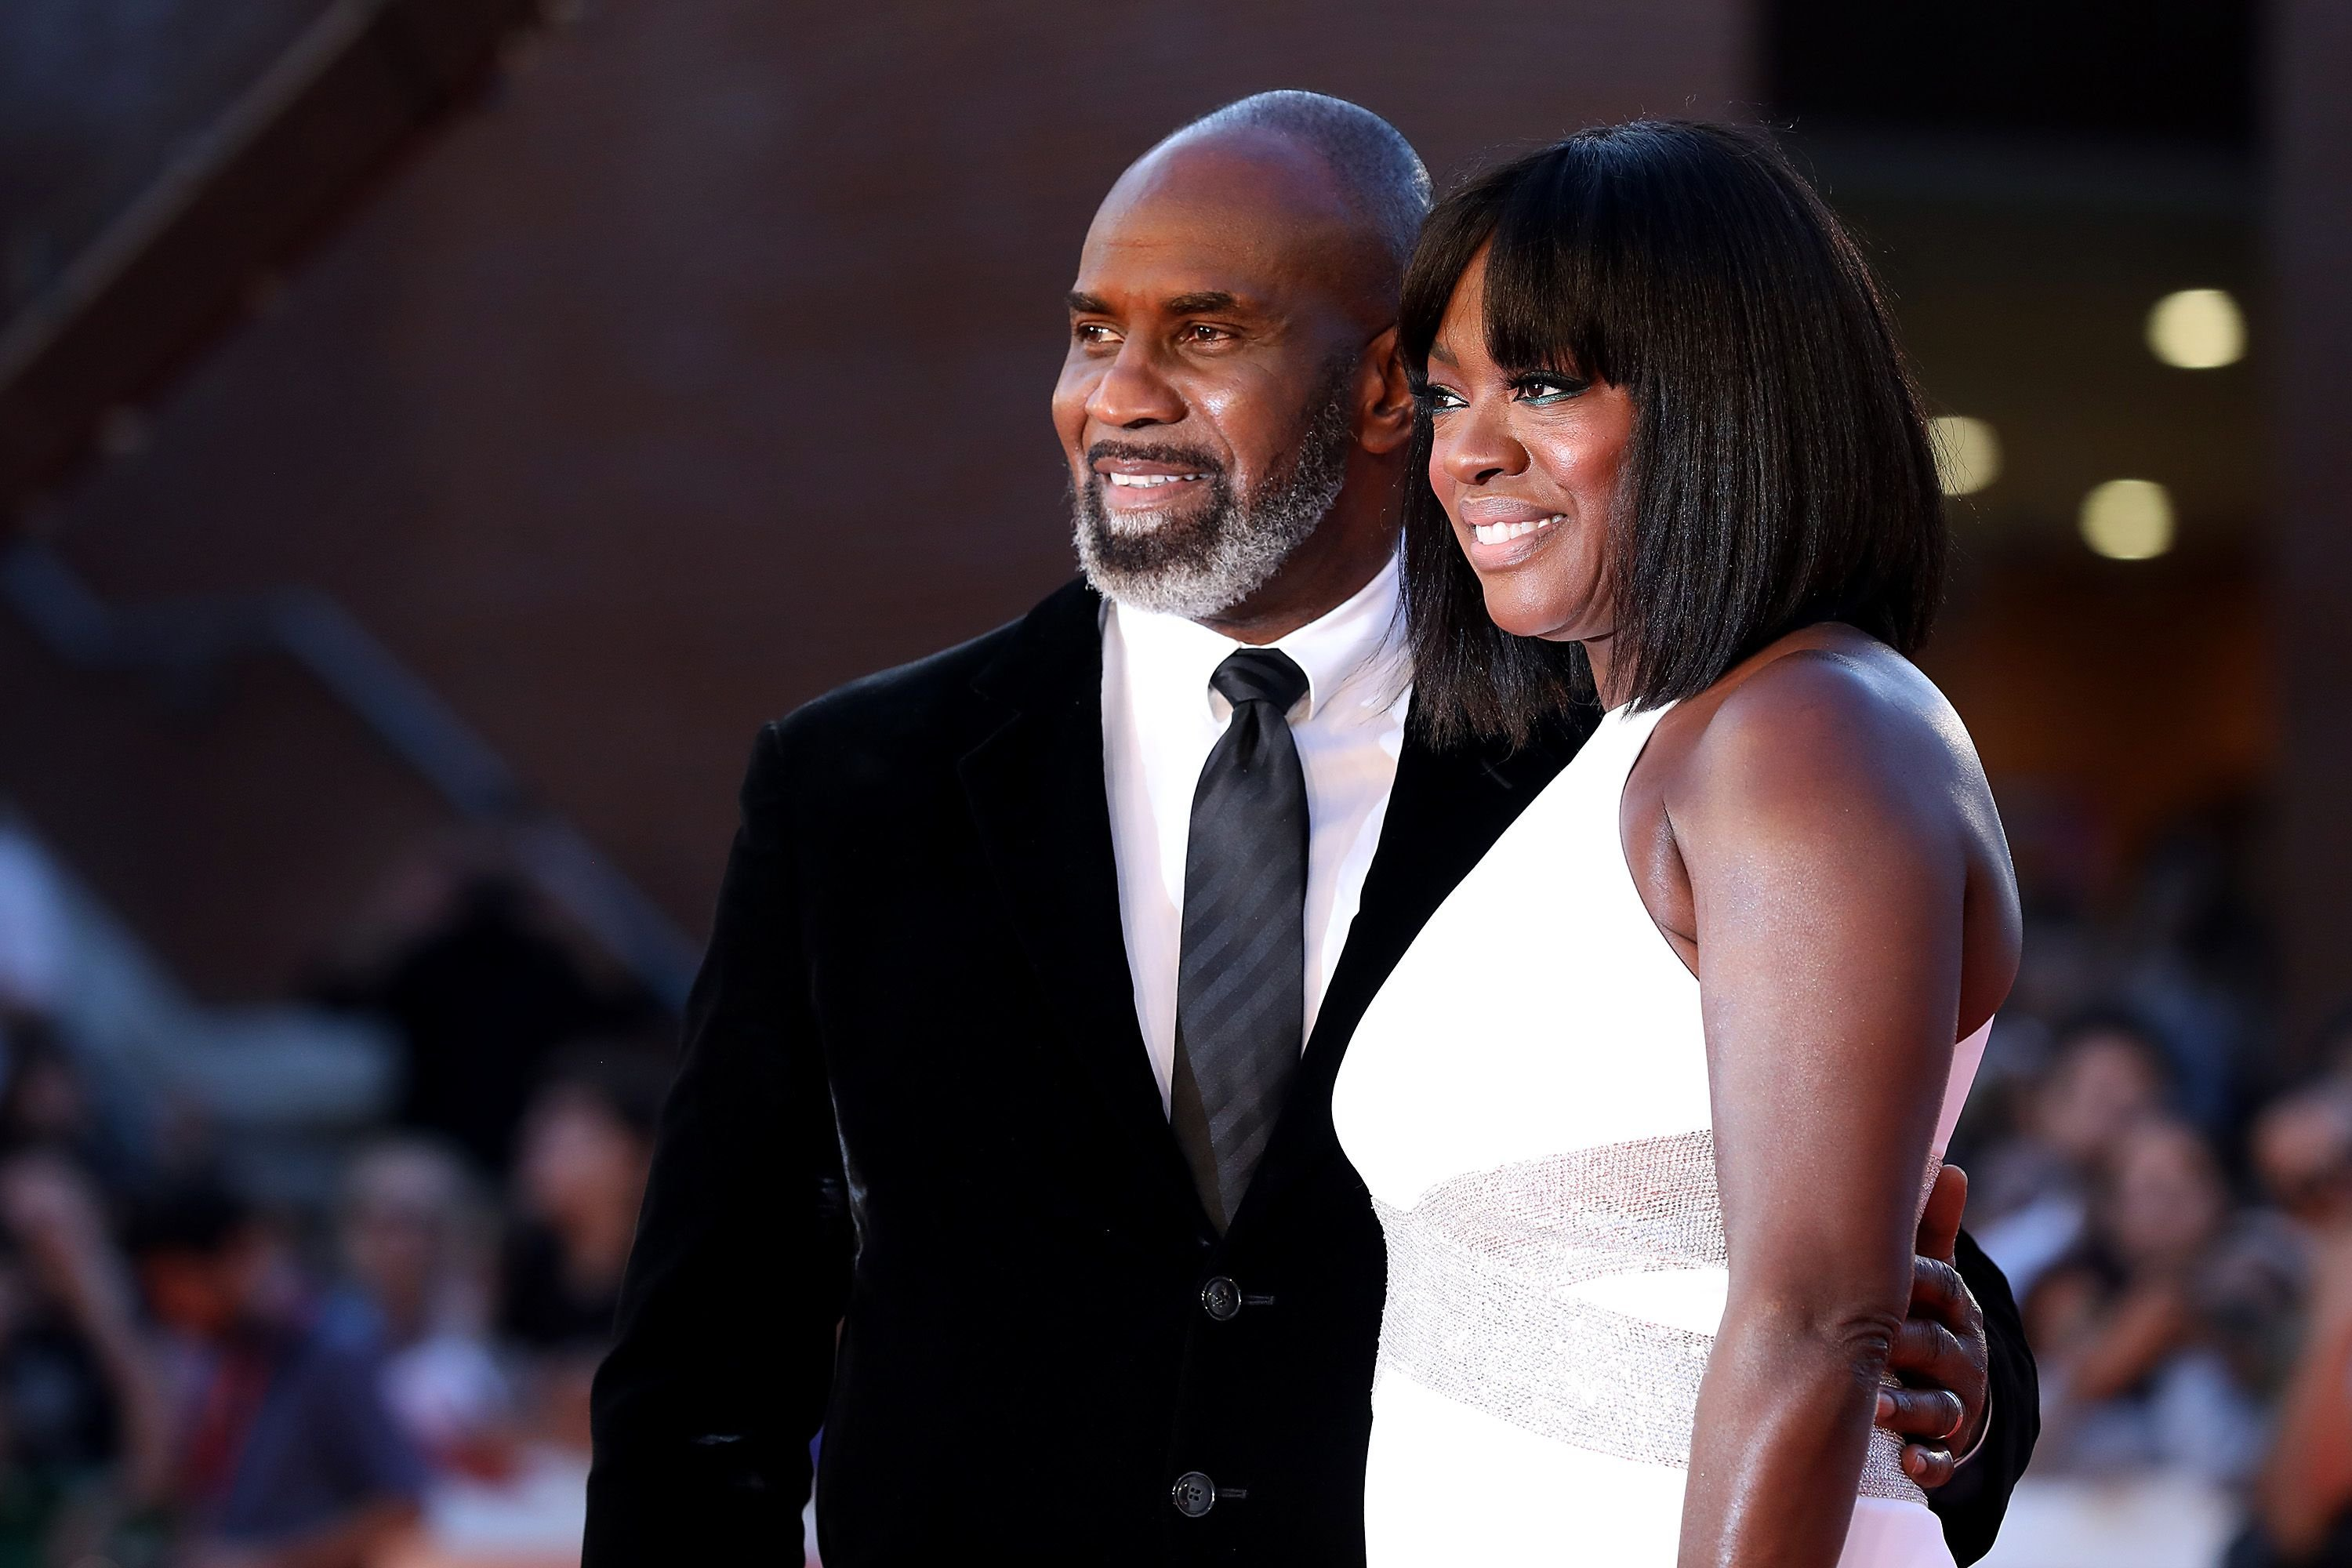 Julius Tennon and Viola Davis at the red carpet during the 14th Rome Film Festival on October 26, 2019 in Rome, Italy | Photo: Getty Images